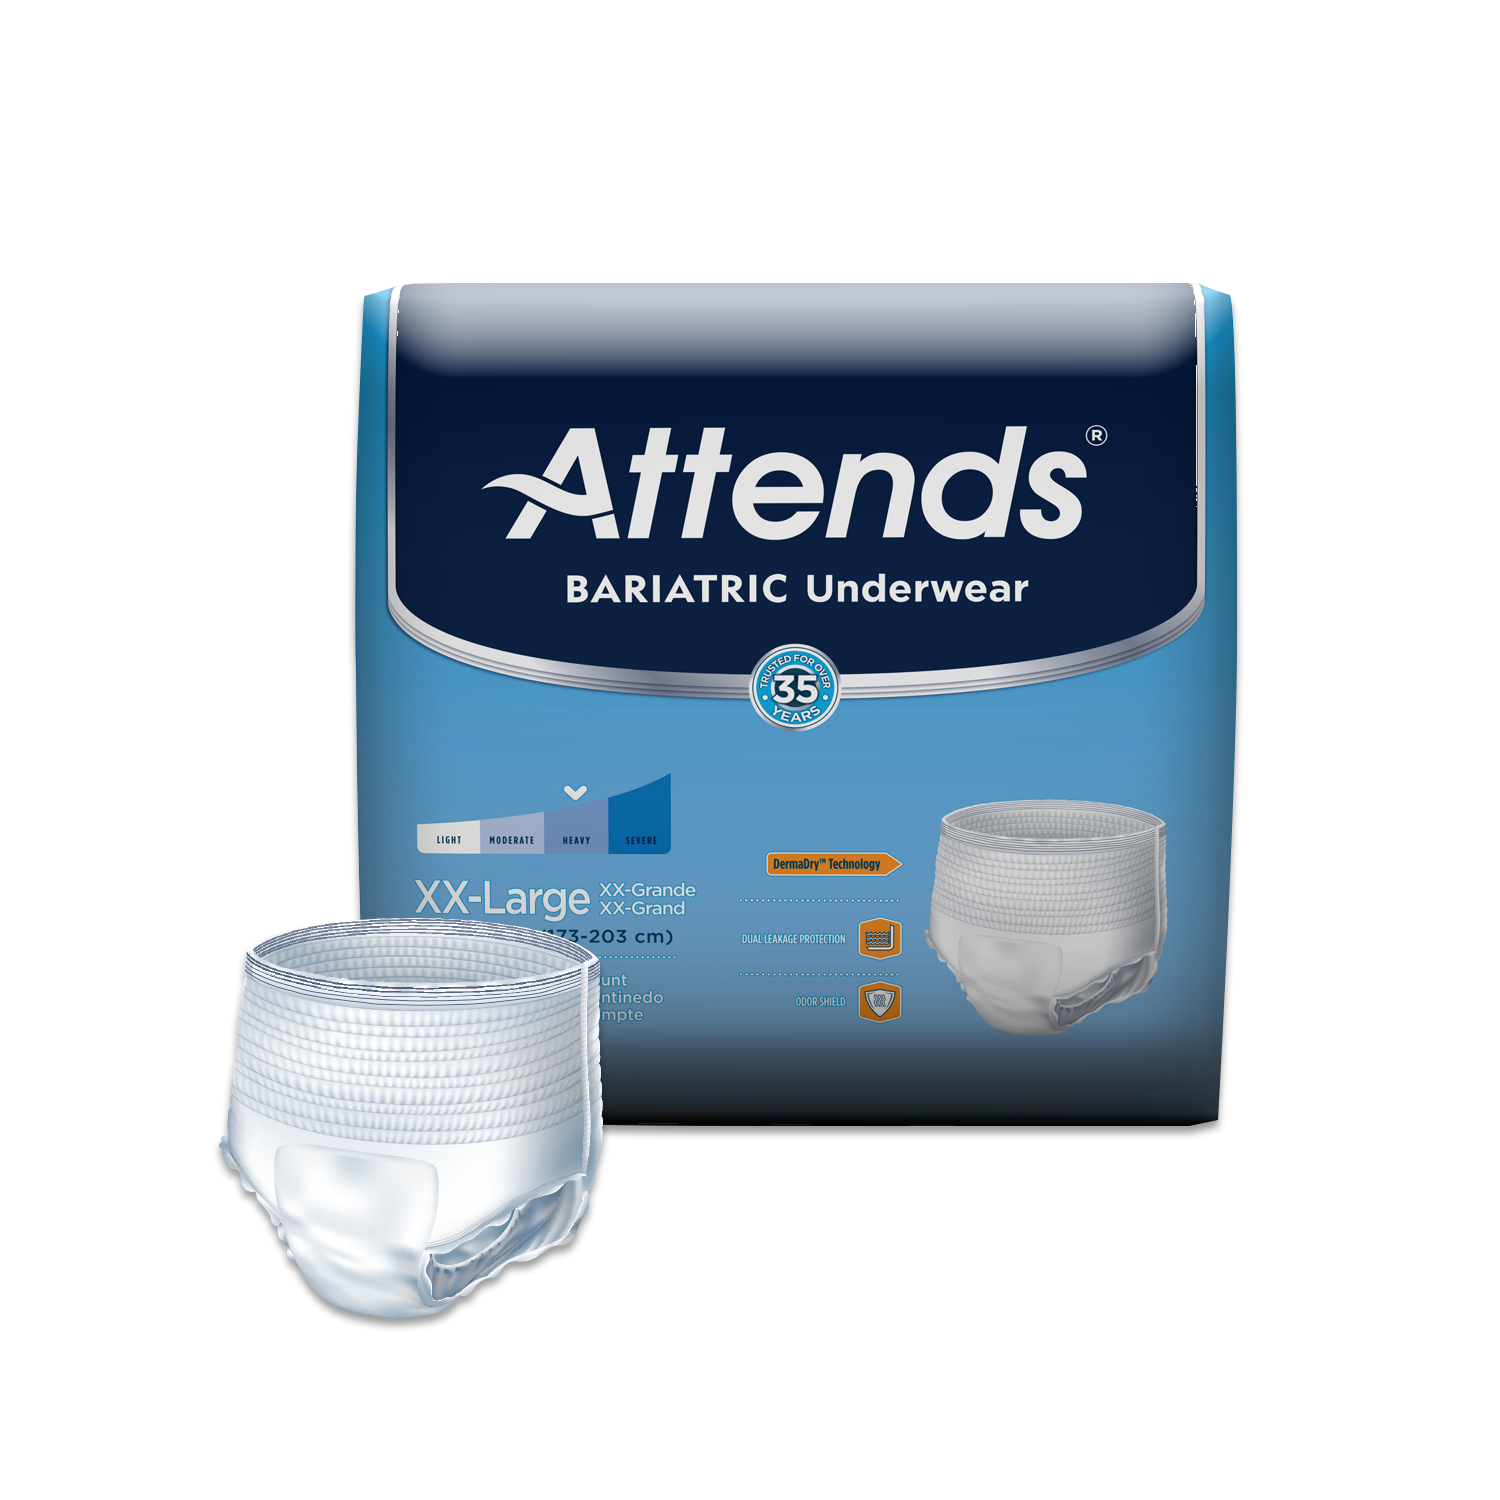 Attends Bariatric Protective Underwear with DermaDry™ Technology for Adult Incontinence Care, Unisex (Choose Your Size)